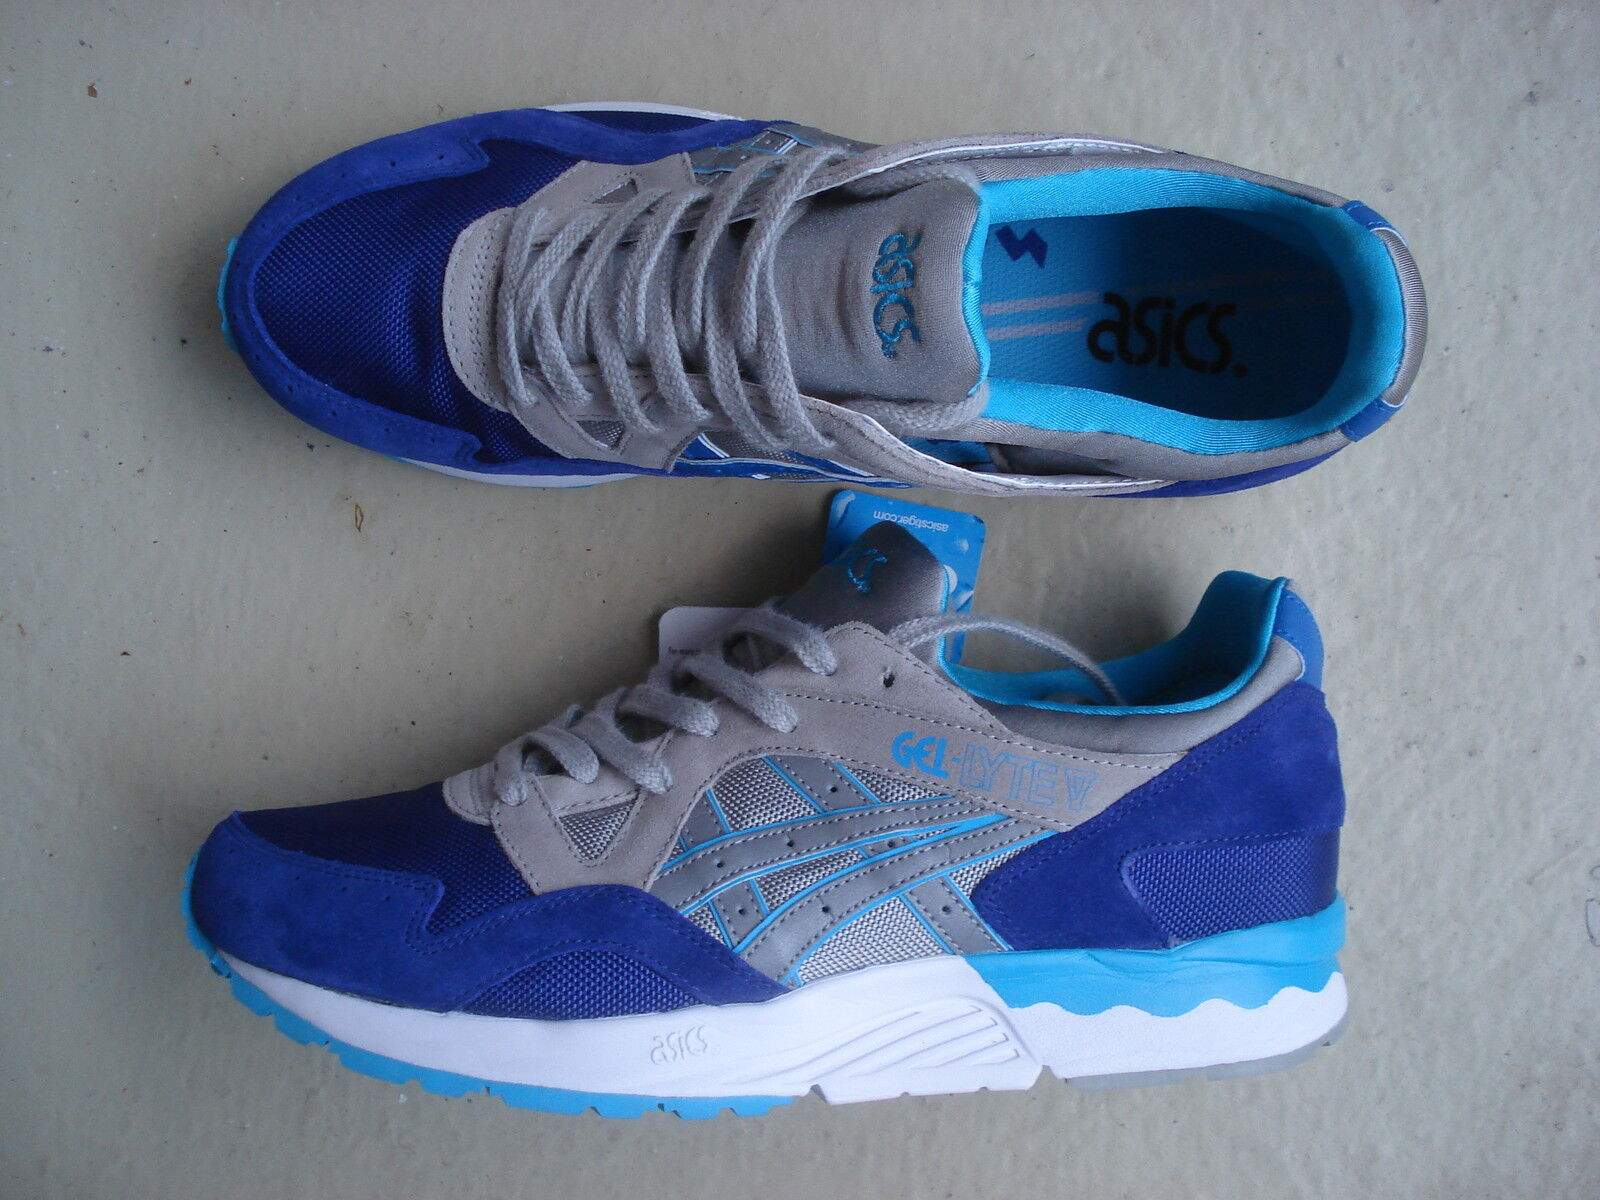 Asics Gel Lyte V 5 42.5 Dark Blau Light grau